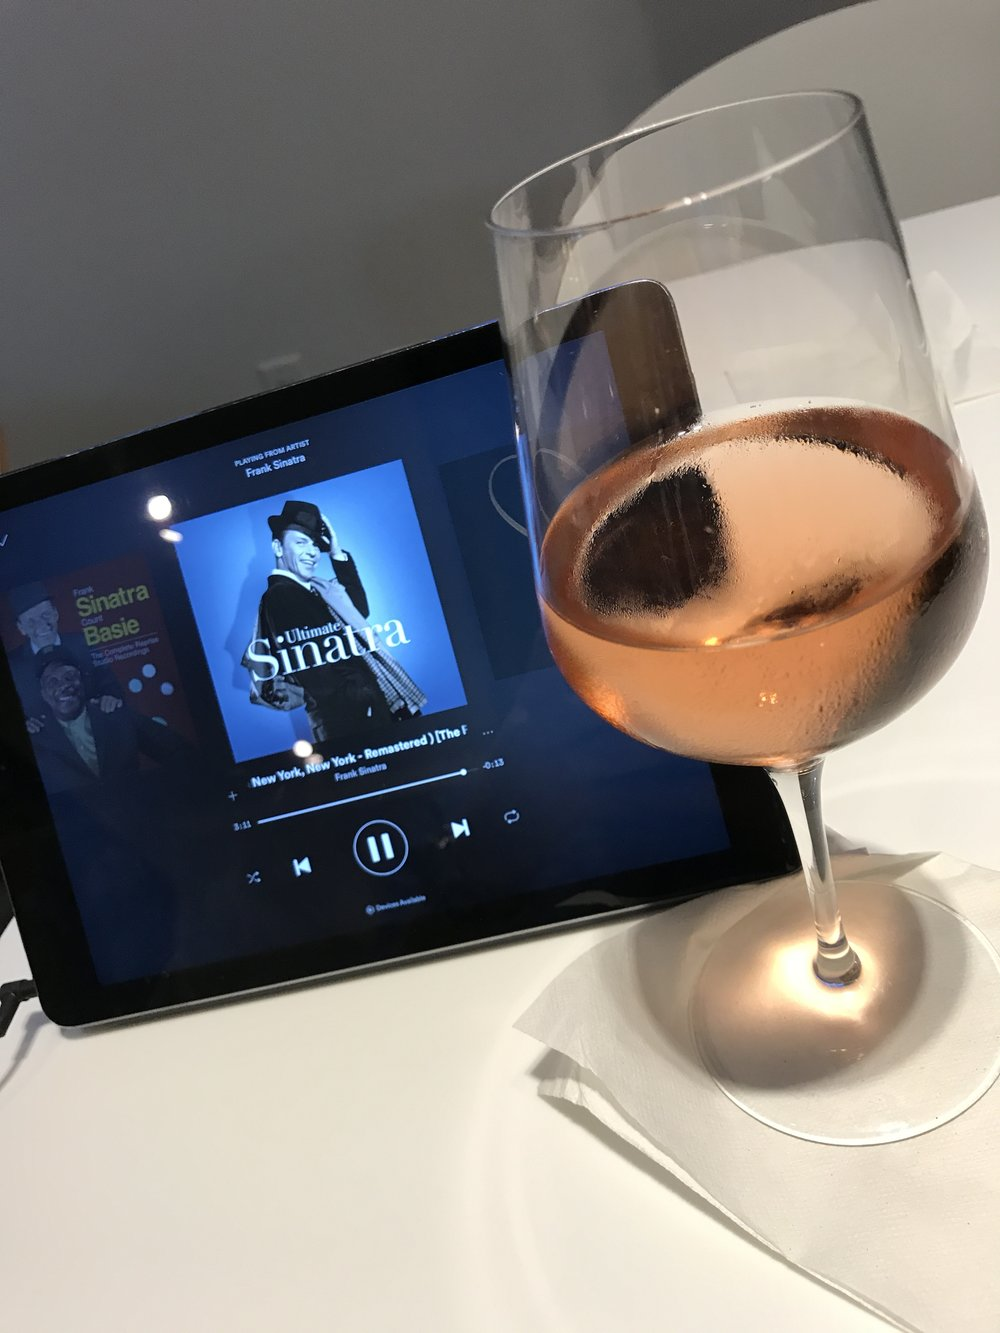 A glass of Rosé and some Frank